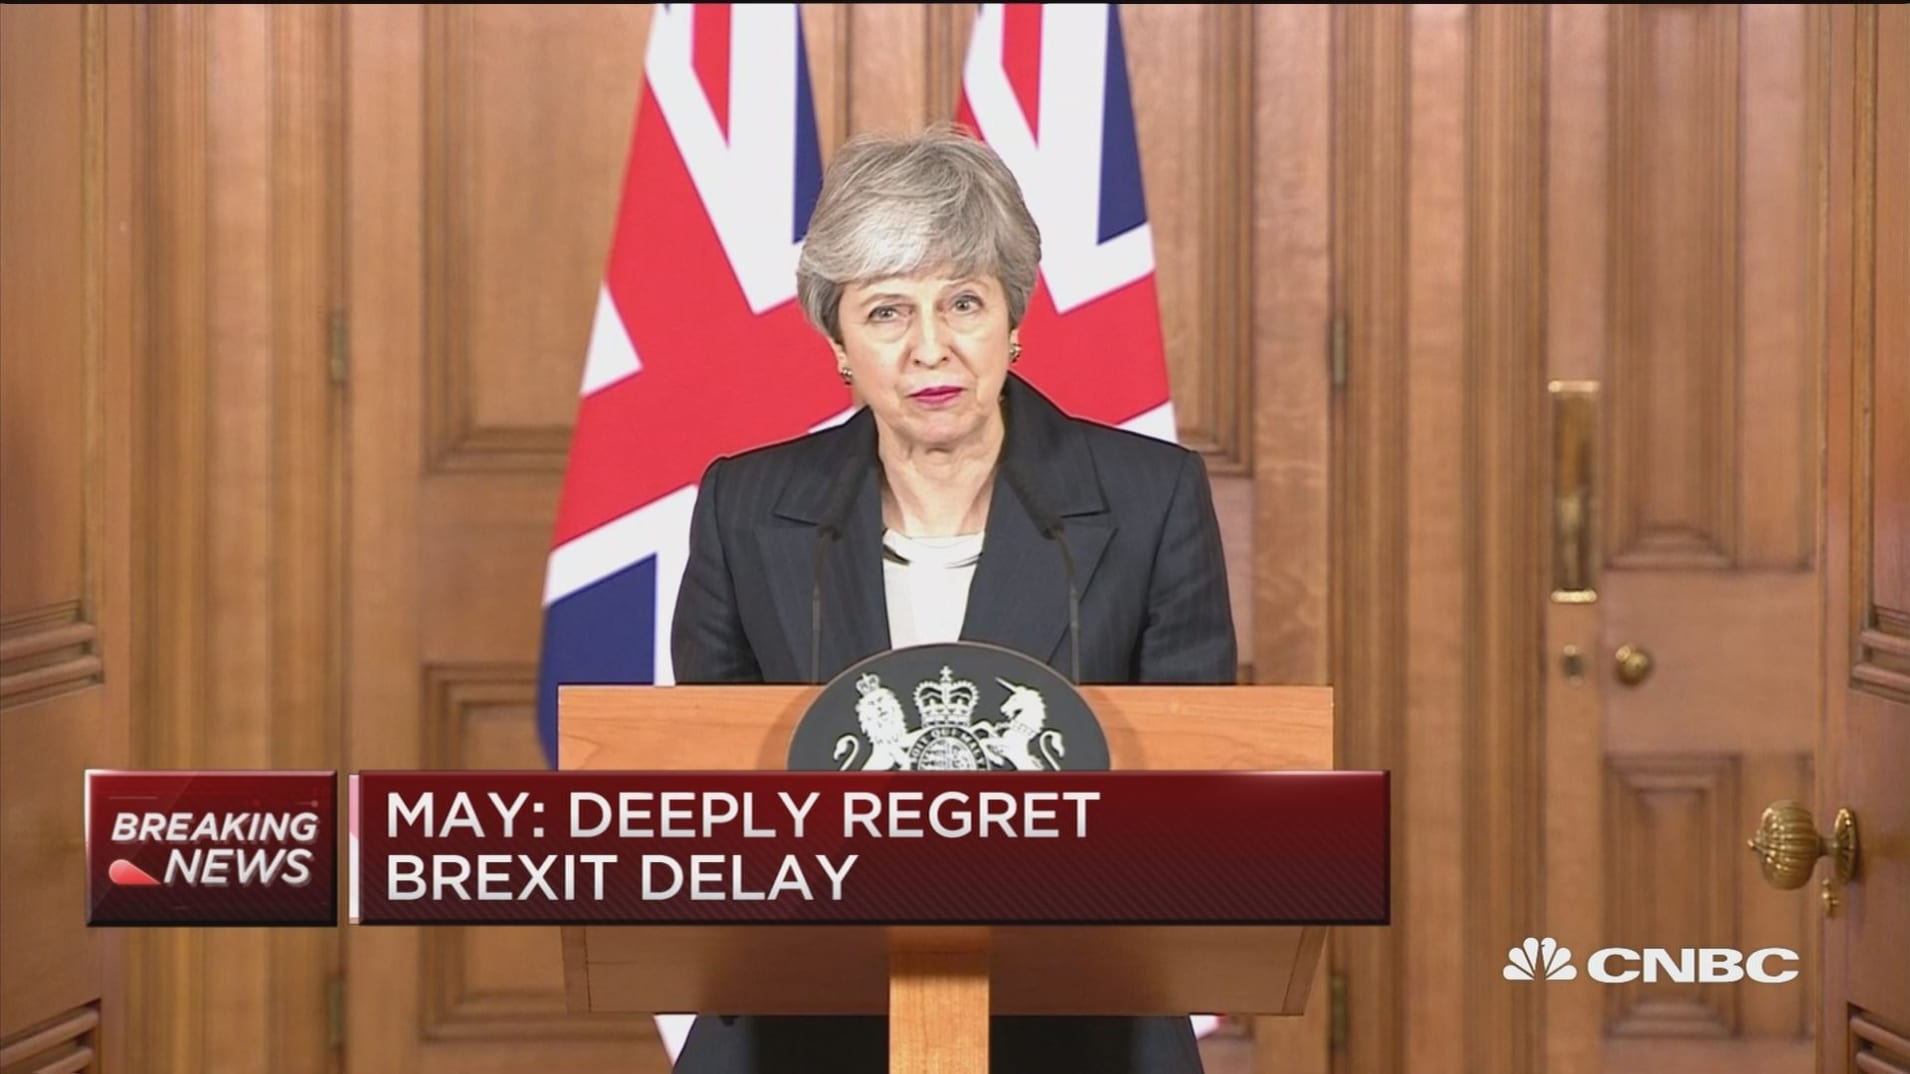 Theresa May: Not prepared to delay Brexit further than June 30